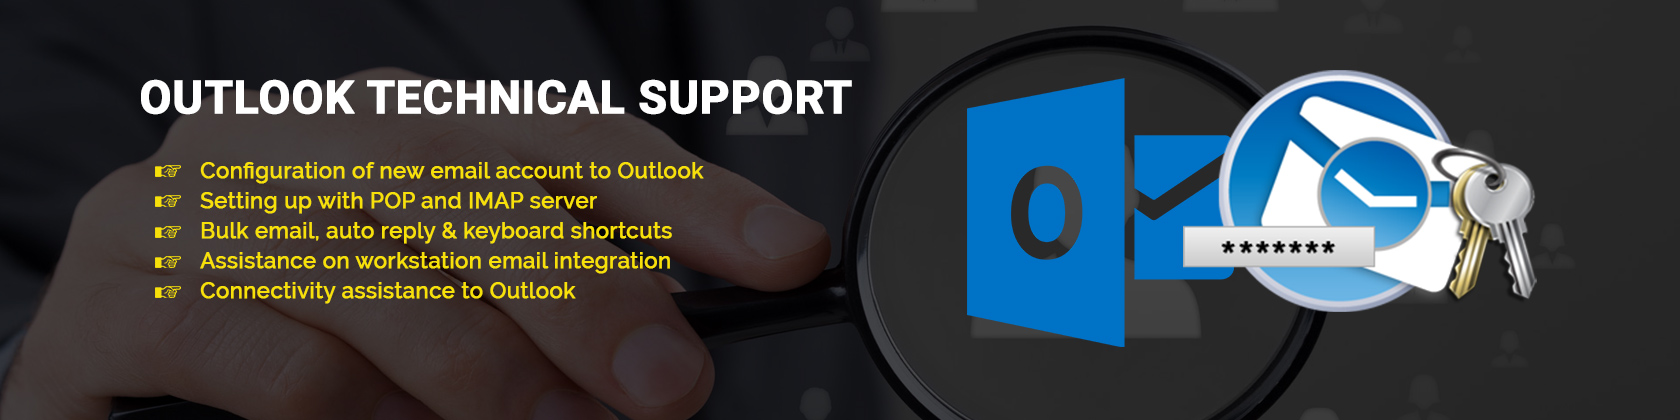 Outlook-Support-Services